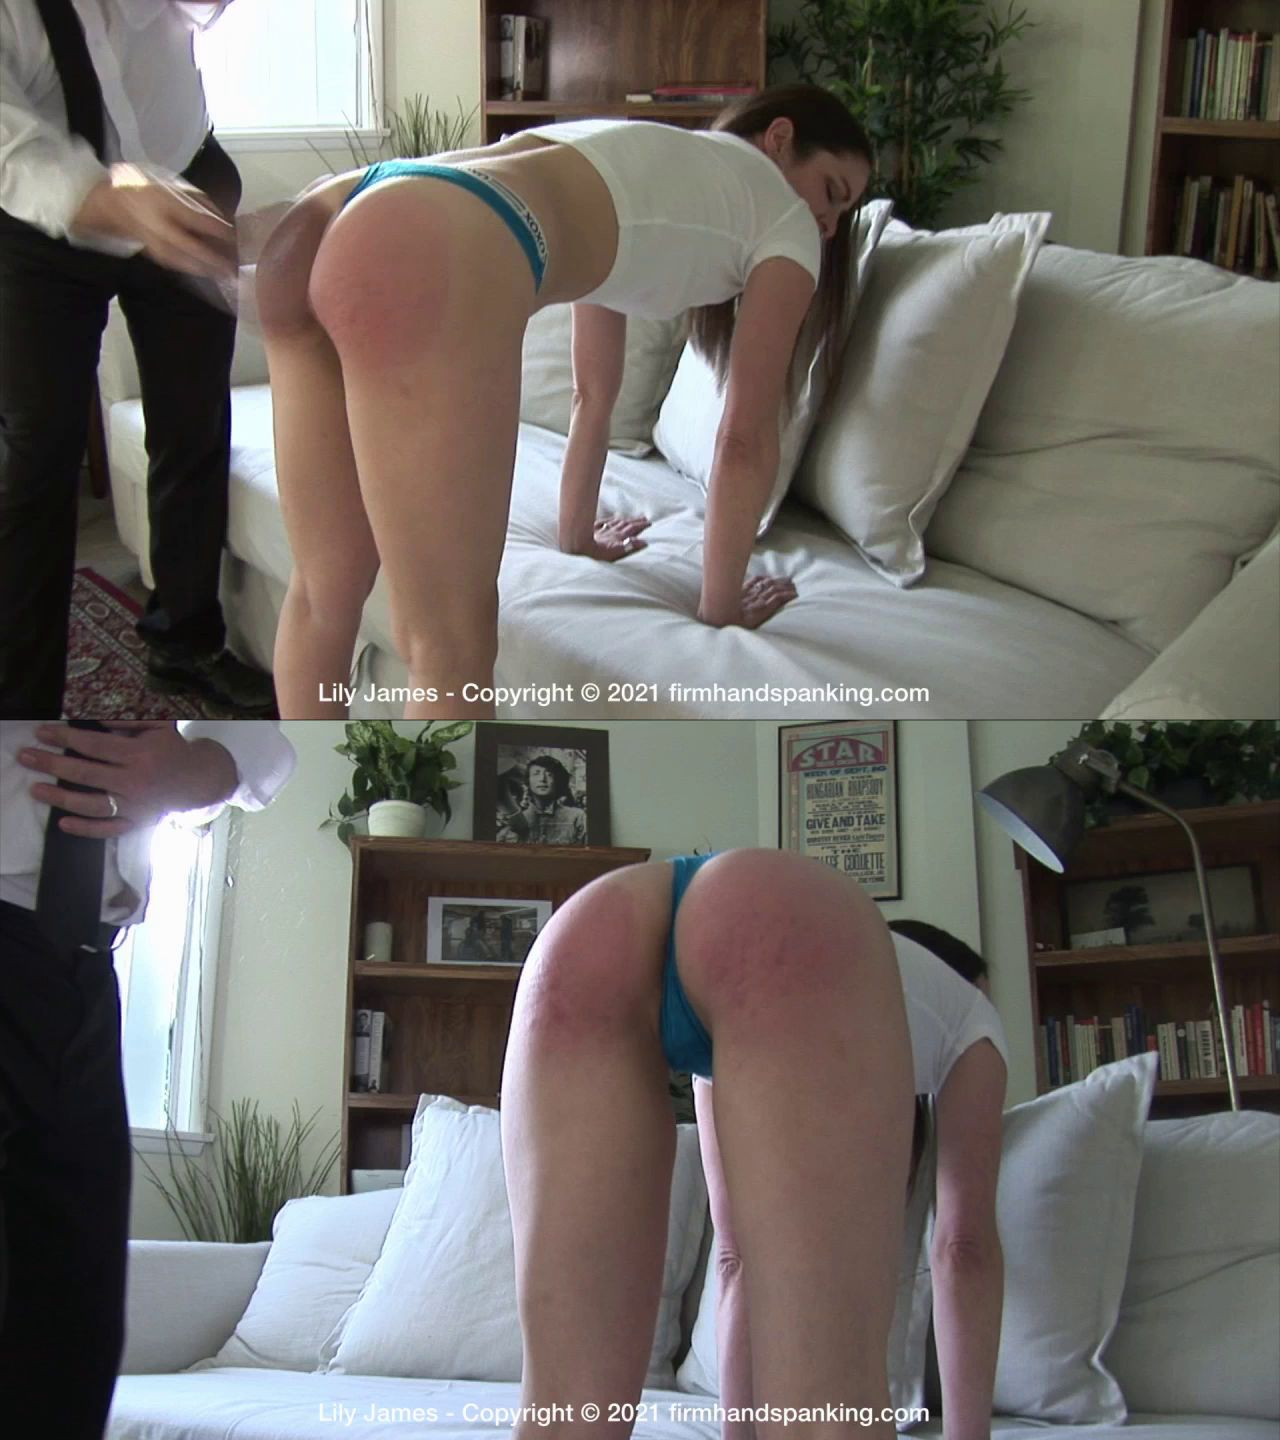 firmhandspanking – MP4/HD – Lily James – Discipline Counselor (Release date: May 26, 2021)